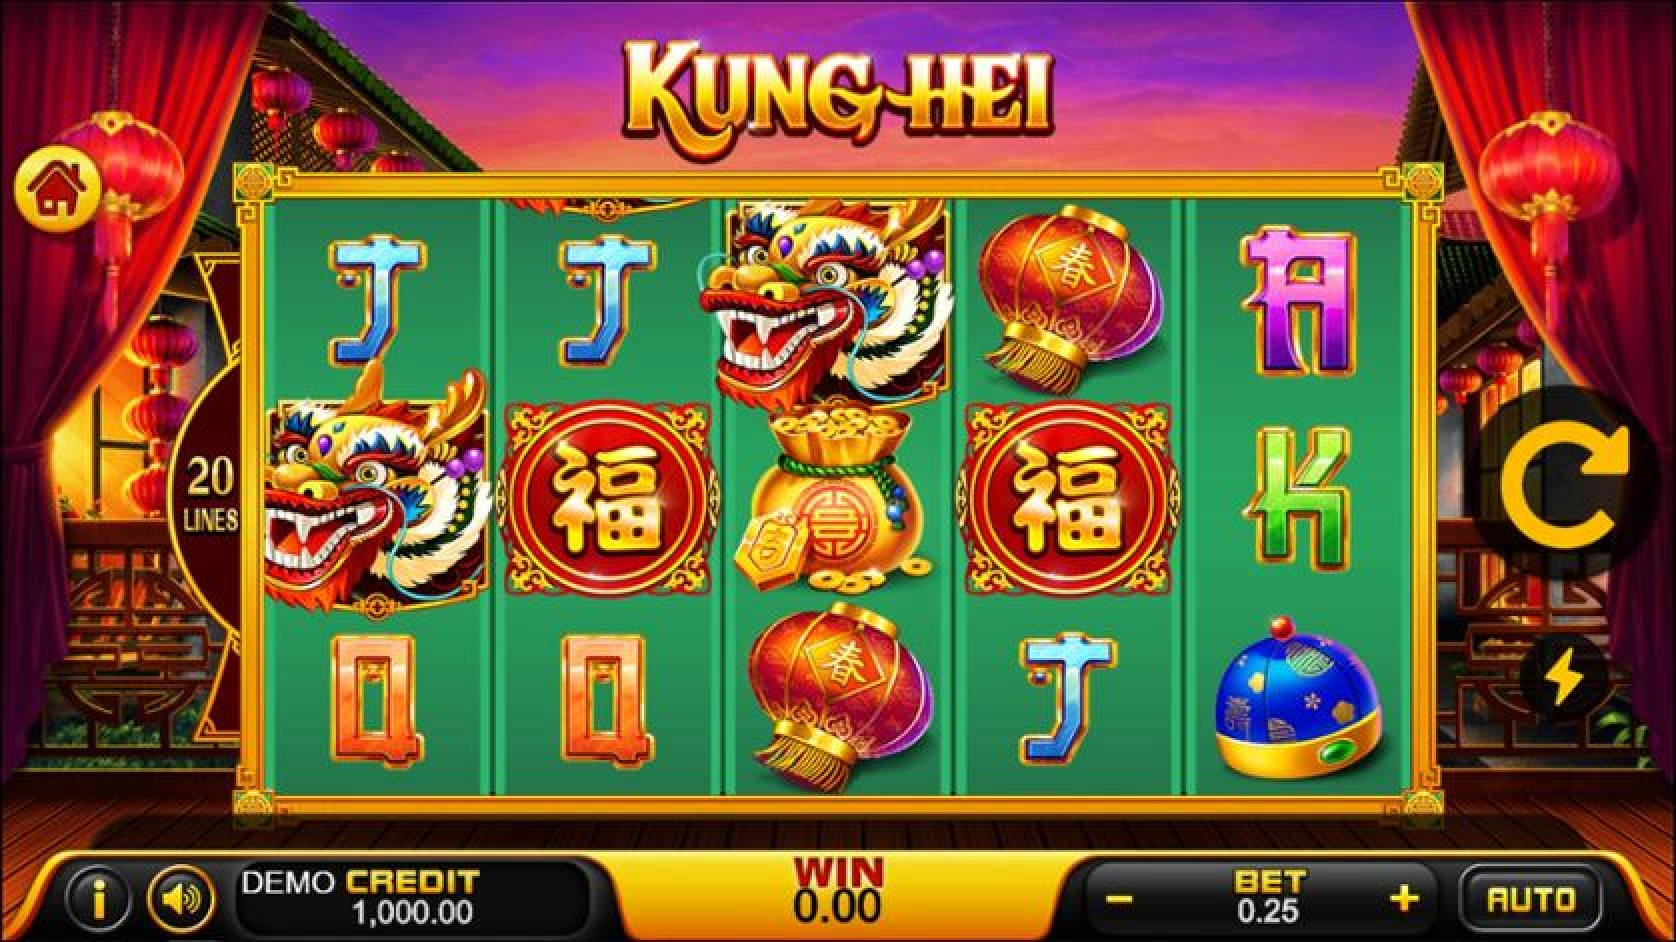 The Kung Hei Online Slot Demo Game by PlayStar